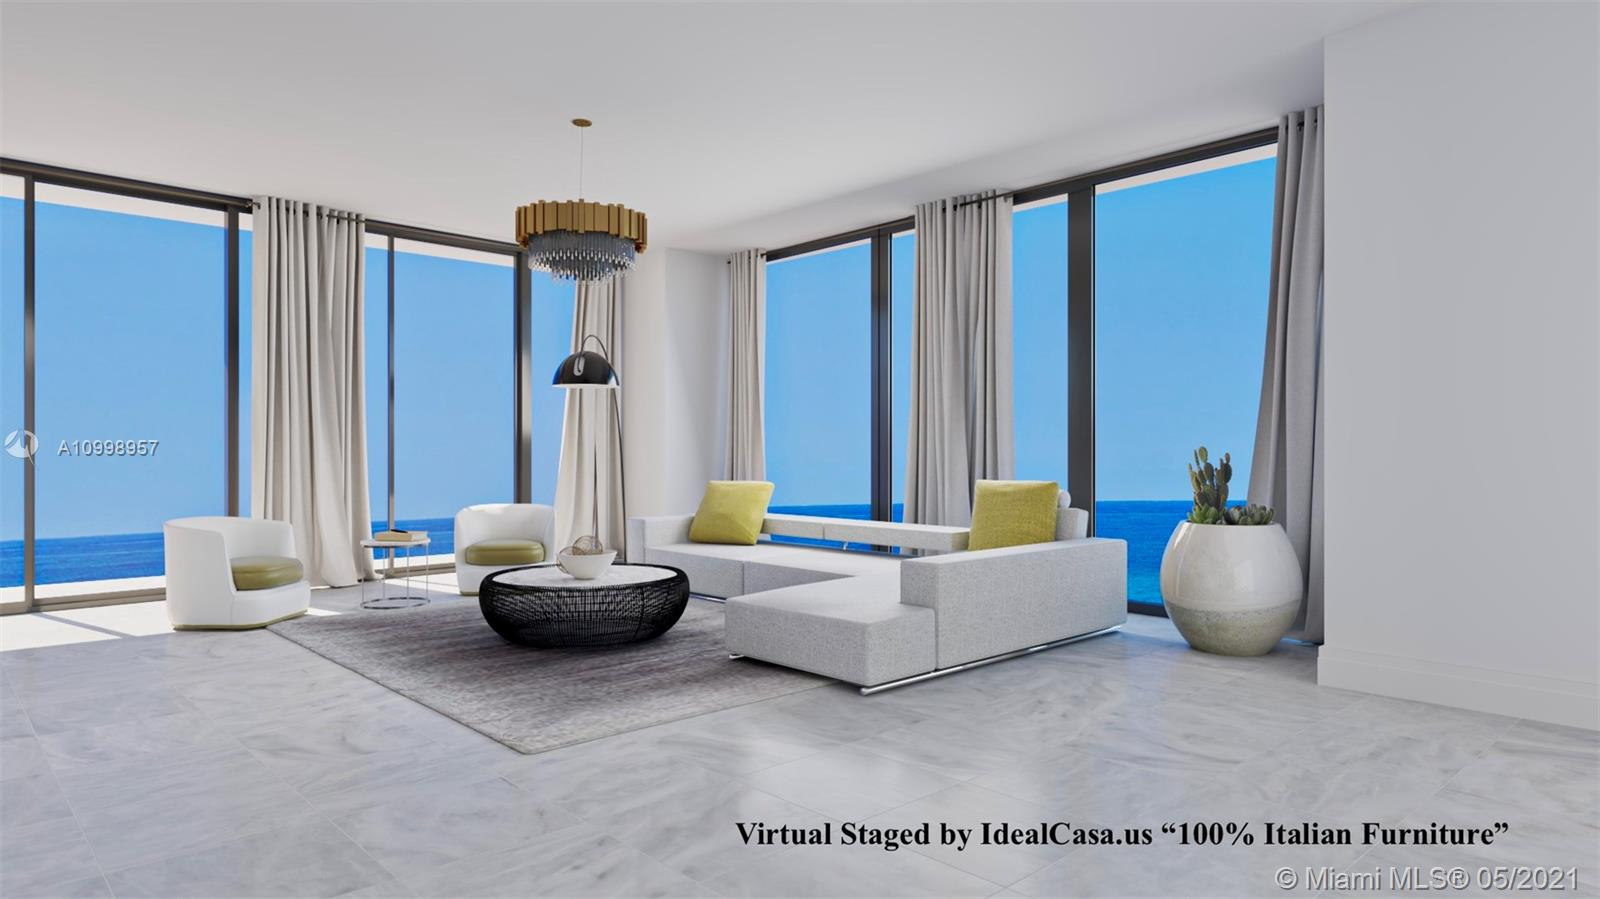 """Turnberry Ocean Club Luxury Residences at Sunny Isles Beach. Luxury Condominium, new construction 2021. Unit 1804 South.Direct Ocean views and Bay views. 4 Beds / 5 1/2 Baths, 3,625 SqFt. Private elevator with foyer. This unit has 10' Ceilings, very illuminated. Italian Kitchen """"Snaidero"""" ,white stone countertops, top-of-the line appliances """"Gaggenau"""". Master bedroom with 2 walk-in closets. Large master Bathroom, Six floor amenities, beach service, three swimming pools, private dining, Hydrotherapy Spa, fitness center, entertainment. Bar and restaurant with full kitchen. Privileges  Turnberry Isle Resort, including golf, tennis, and Marina activities"""